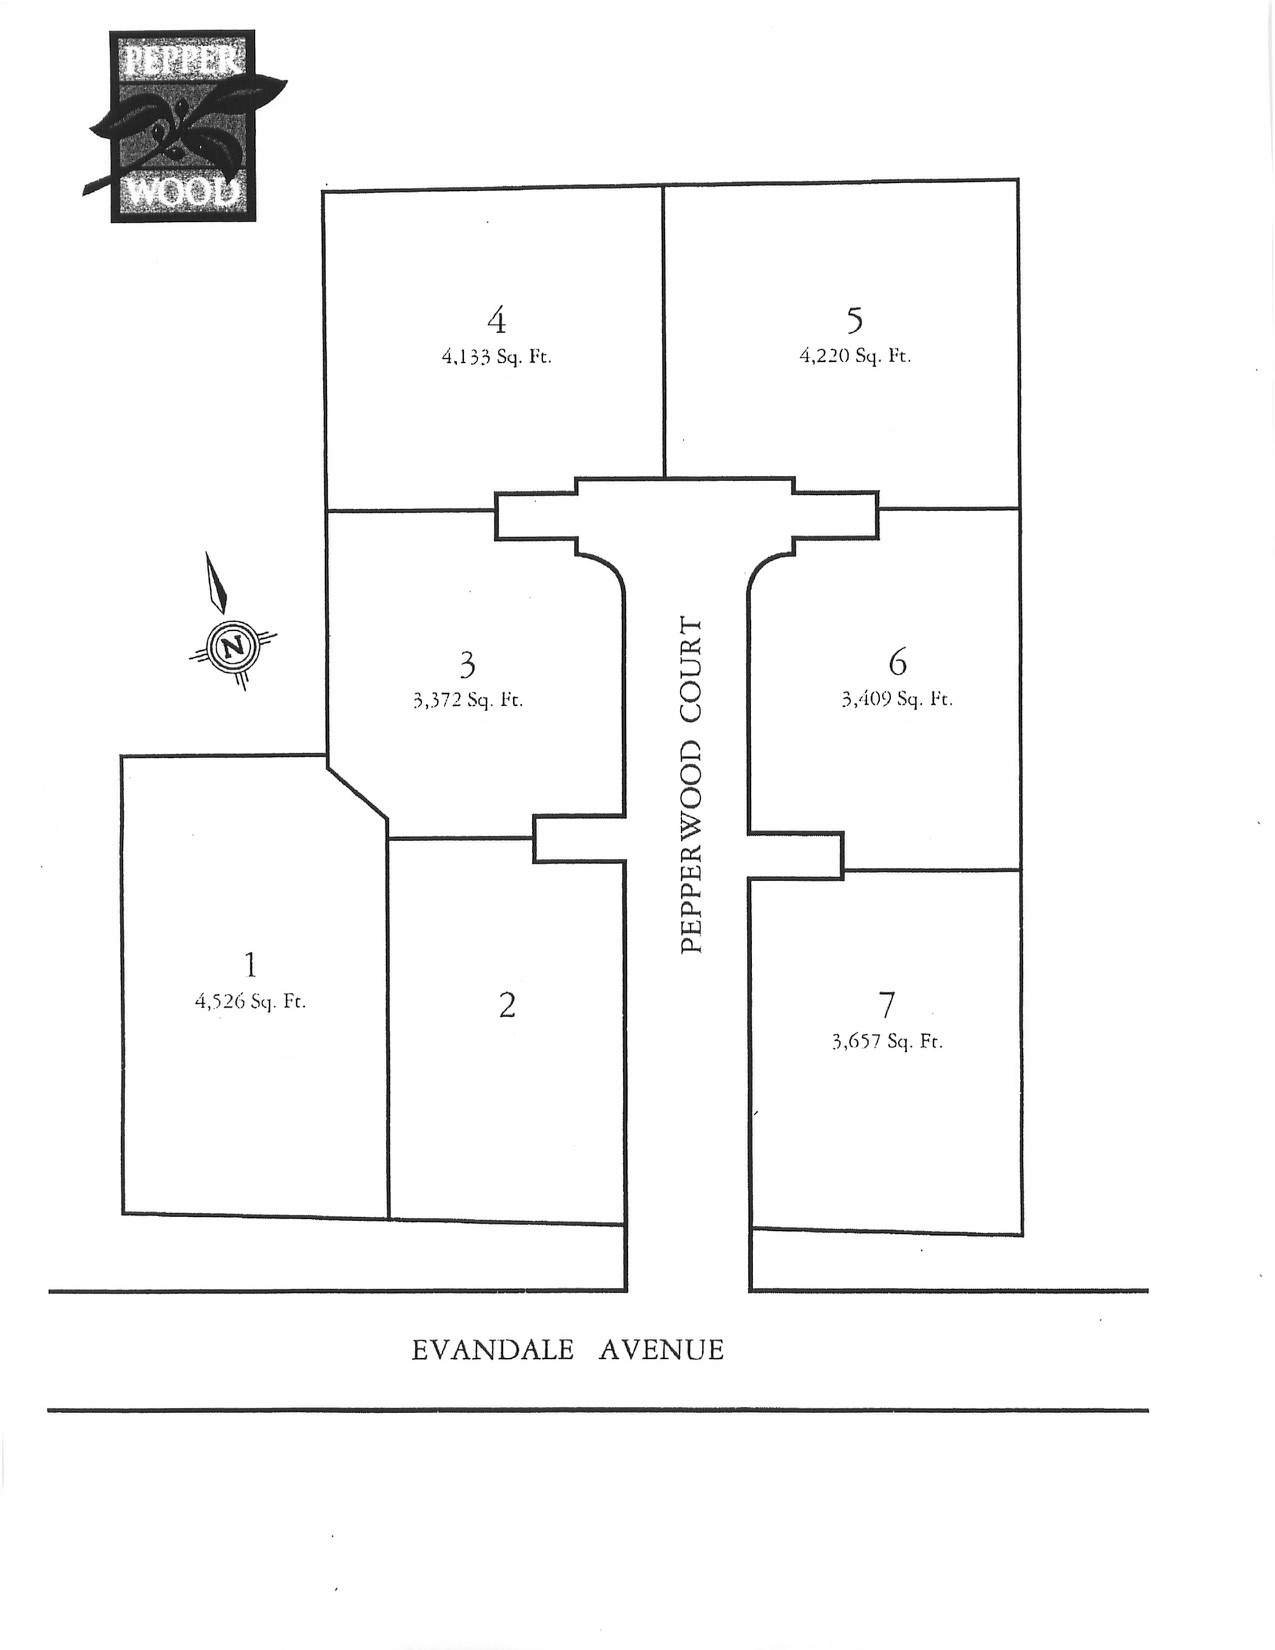 635 Pepperwood Lots and Dimensions 2004 pg2.jpg